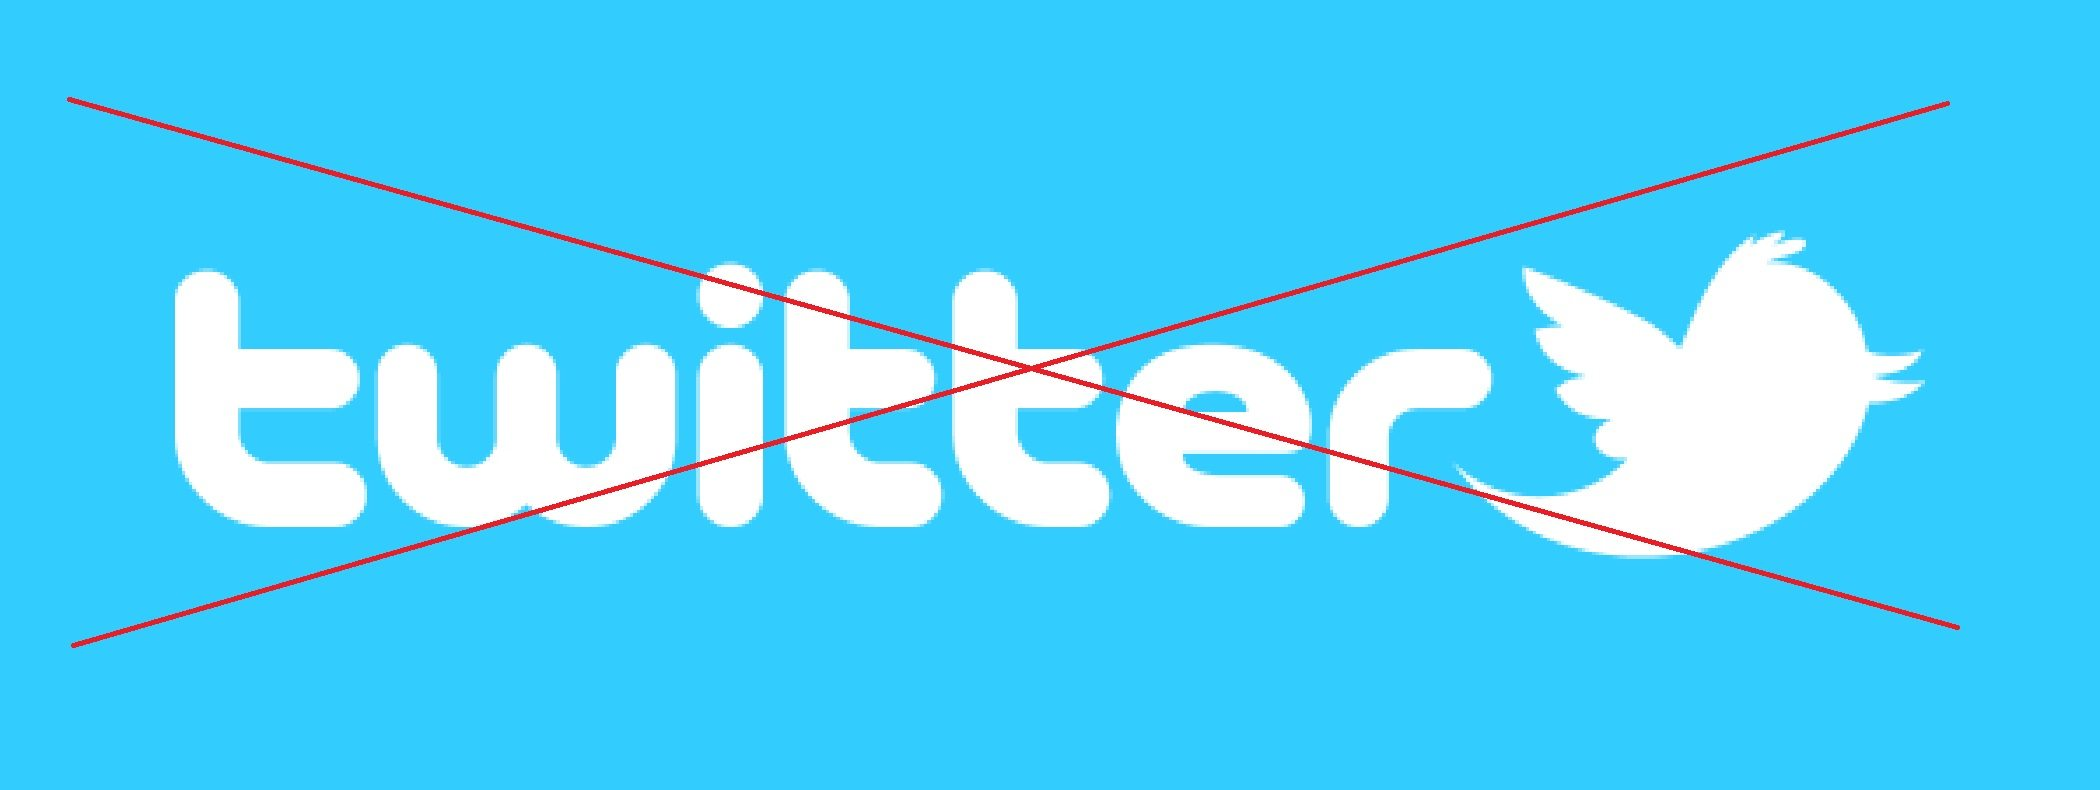 Is Twitter Dying?